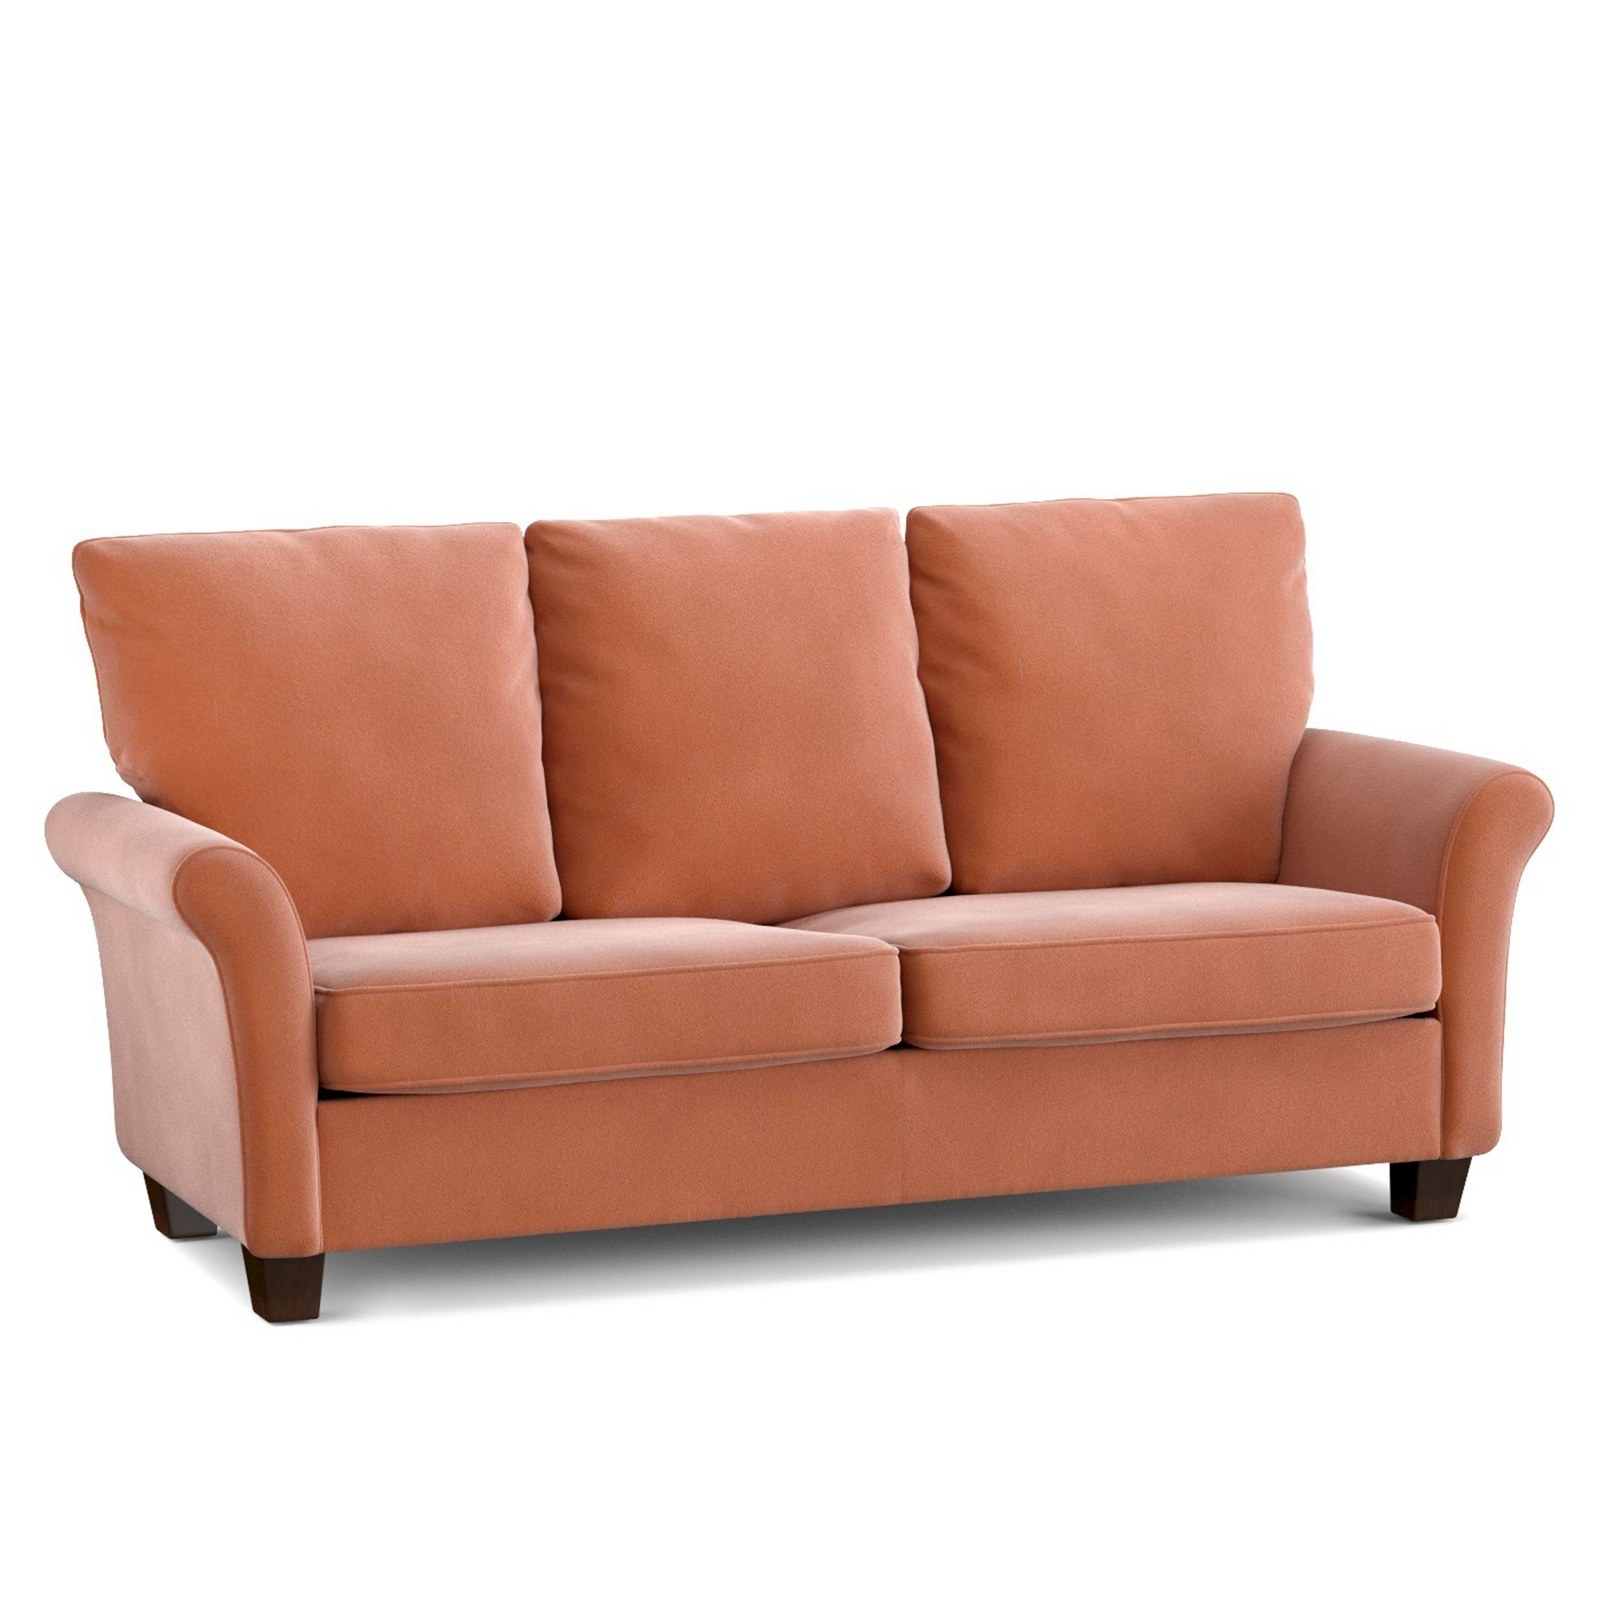 Inexpensive couches cheap living room sets under 500 near for Sofa set near me